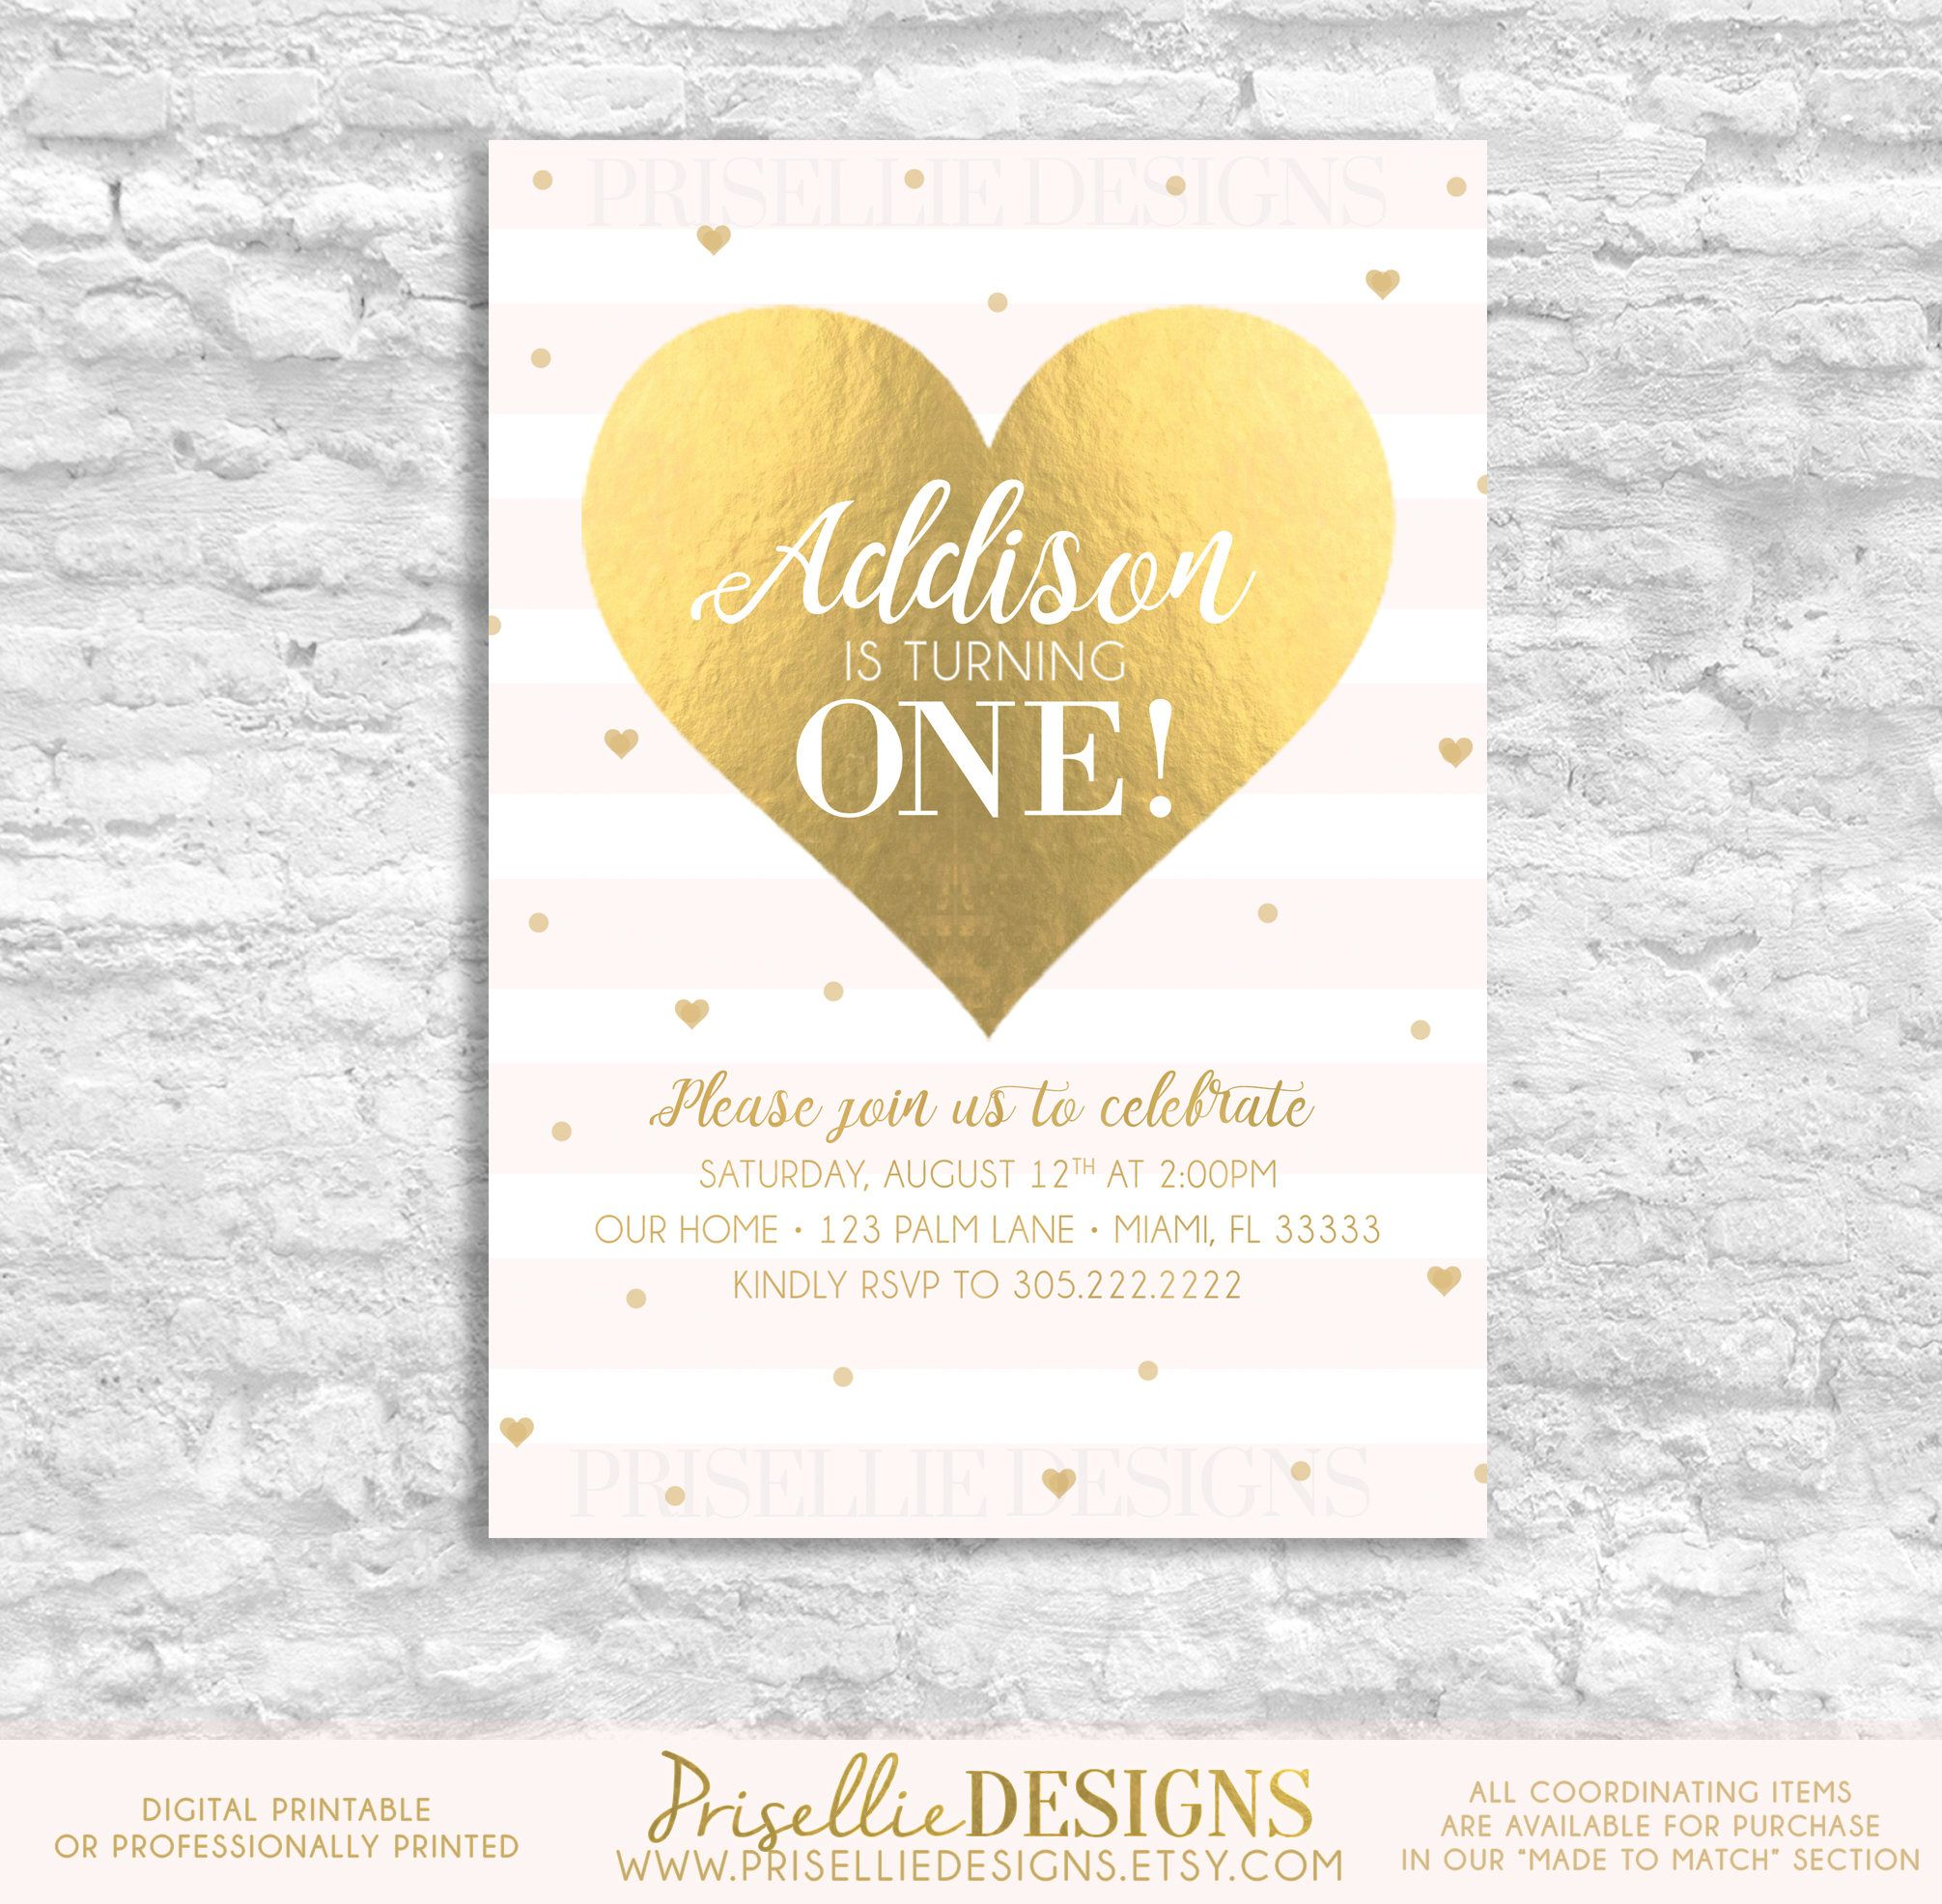 A personal favorite from my etsy shop httpsetsylisting first birthday invitation girl birthday invitation pink and gold first birthday invitation blush pink heart birthday invitation filmwisefo Images